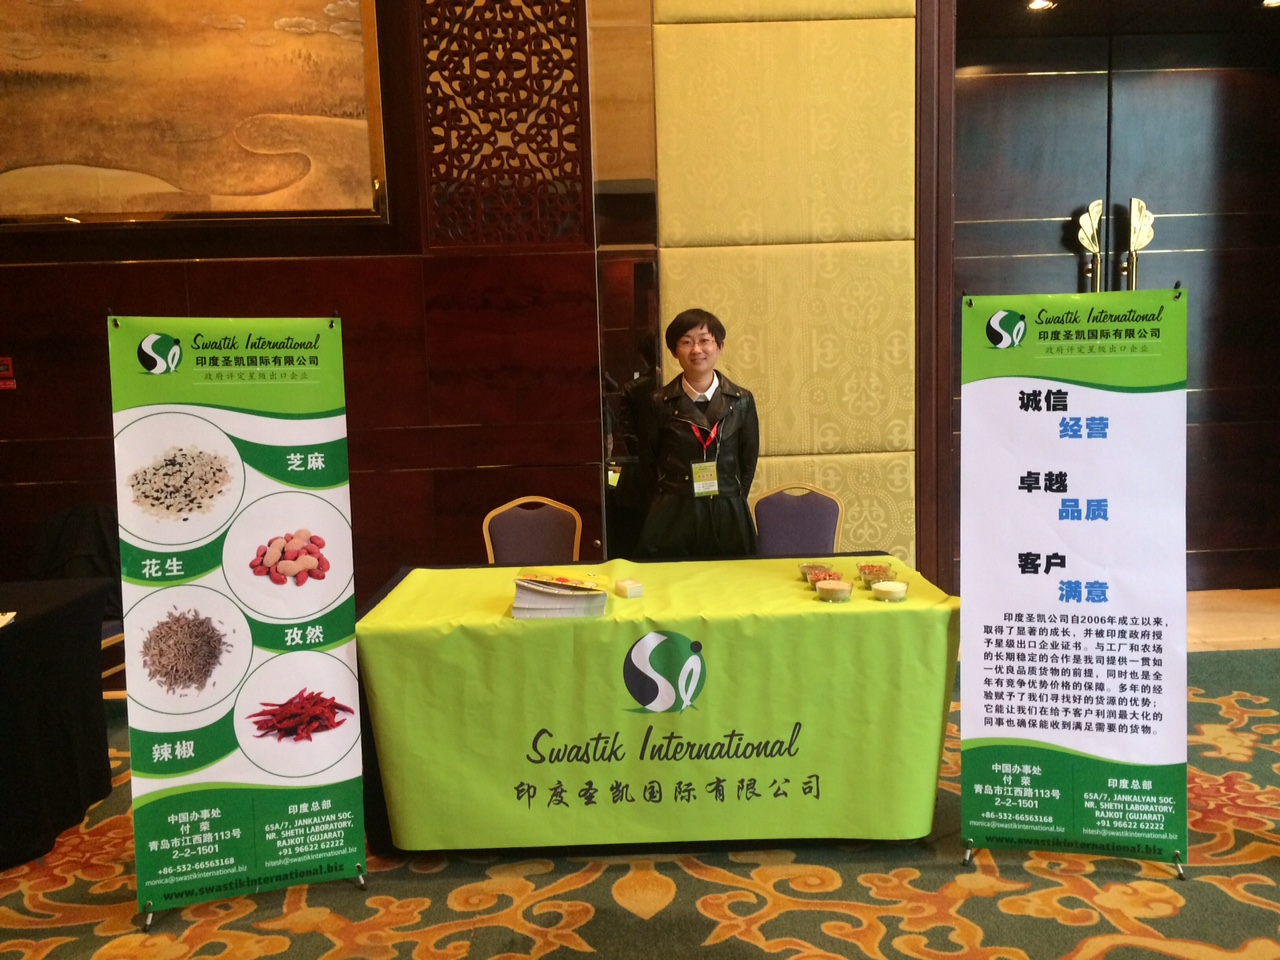 Sesame Conference, China